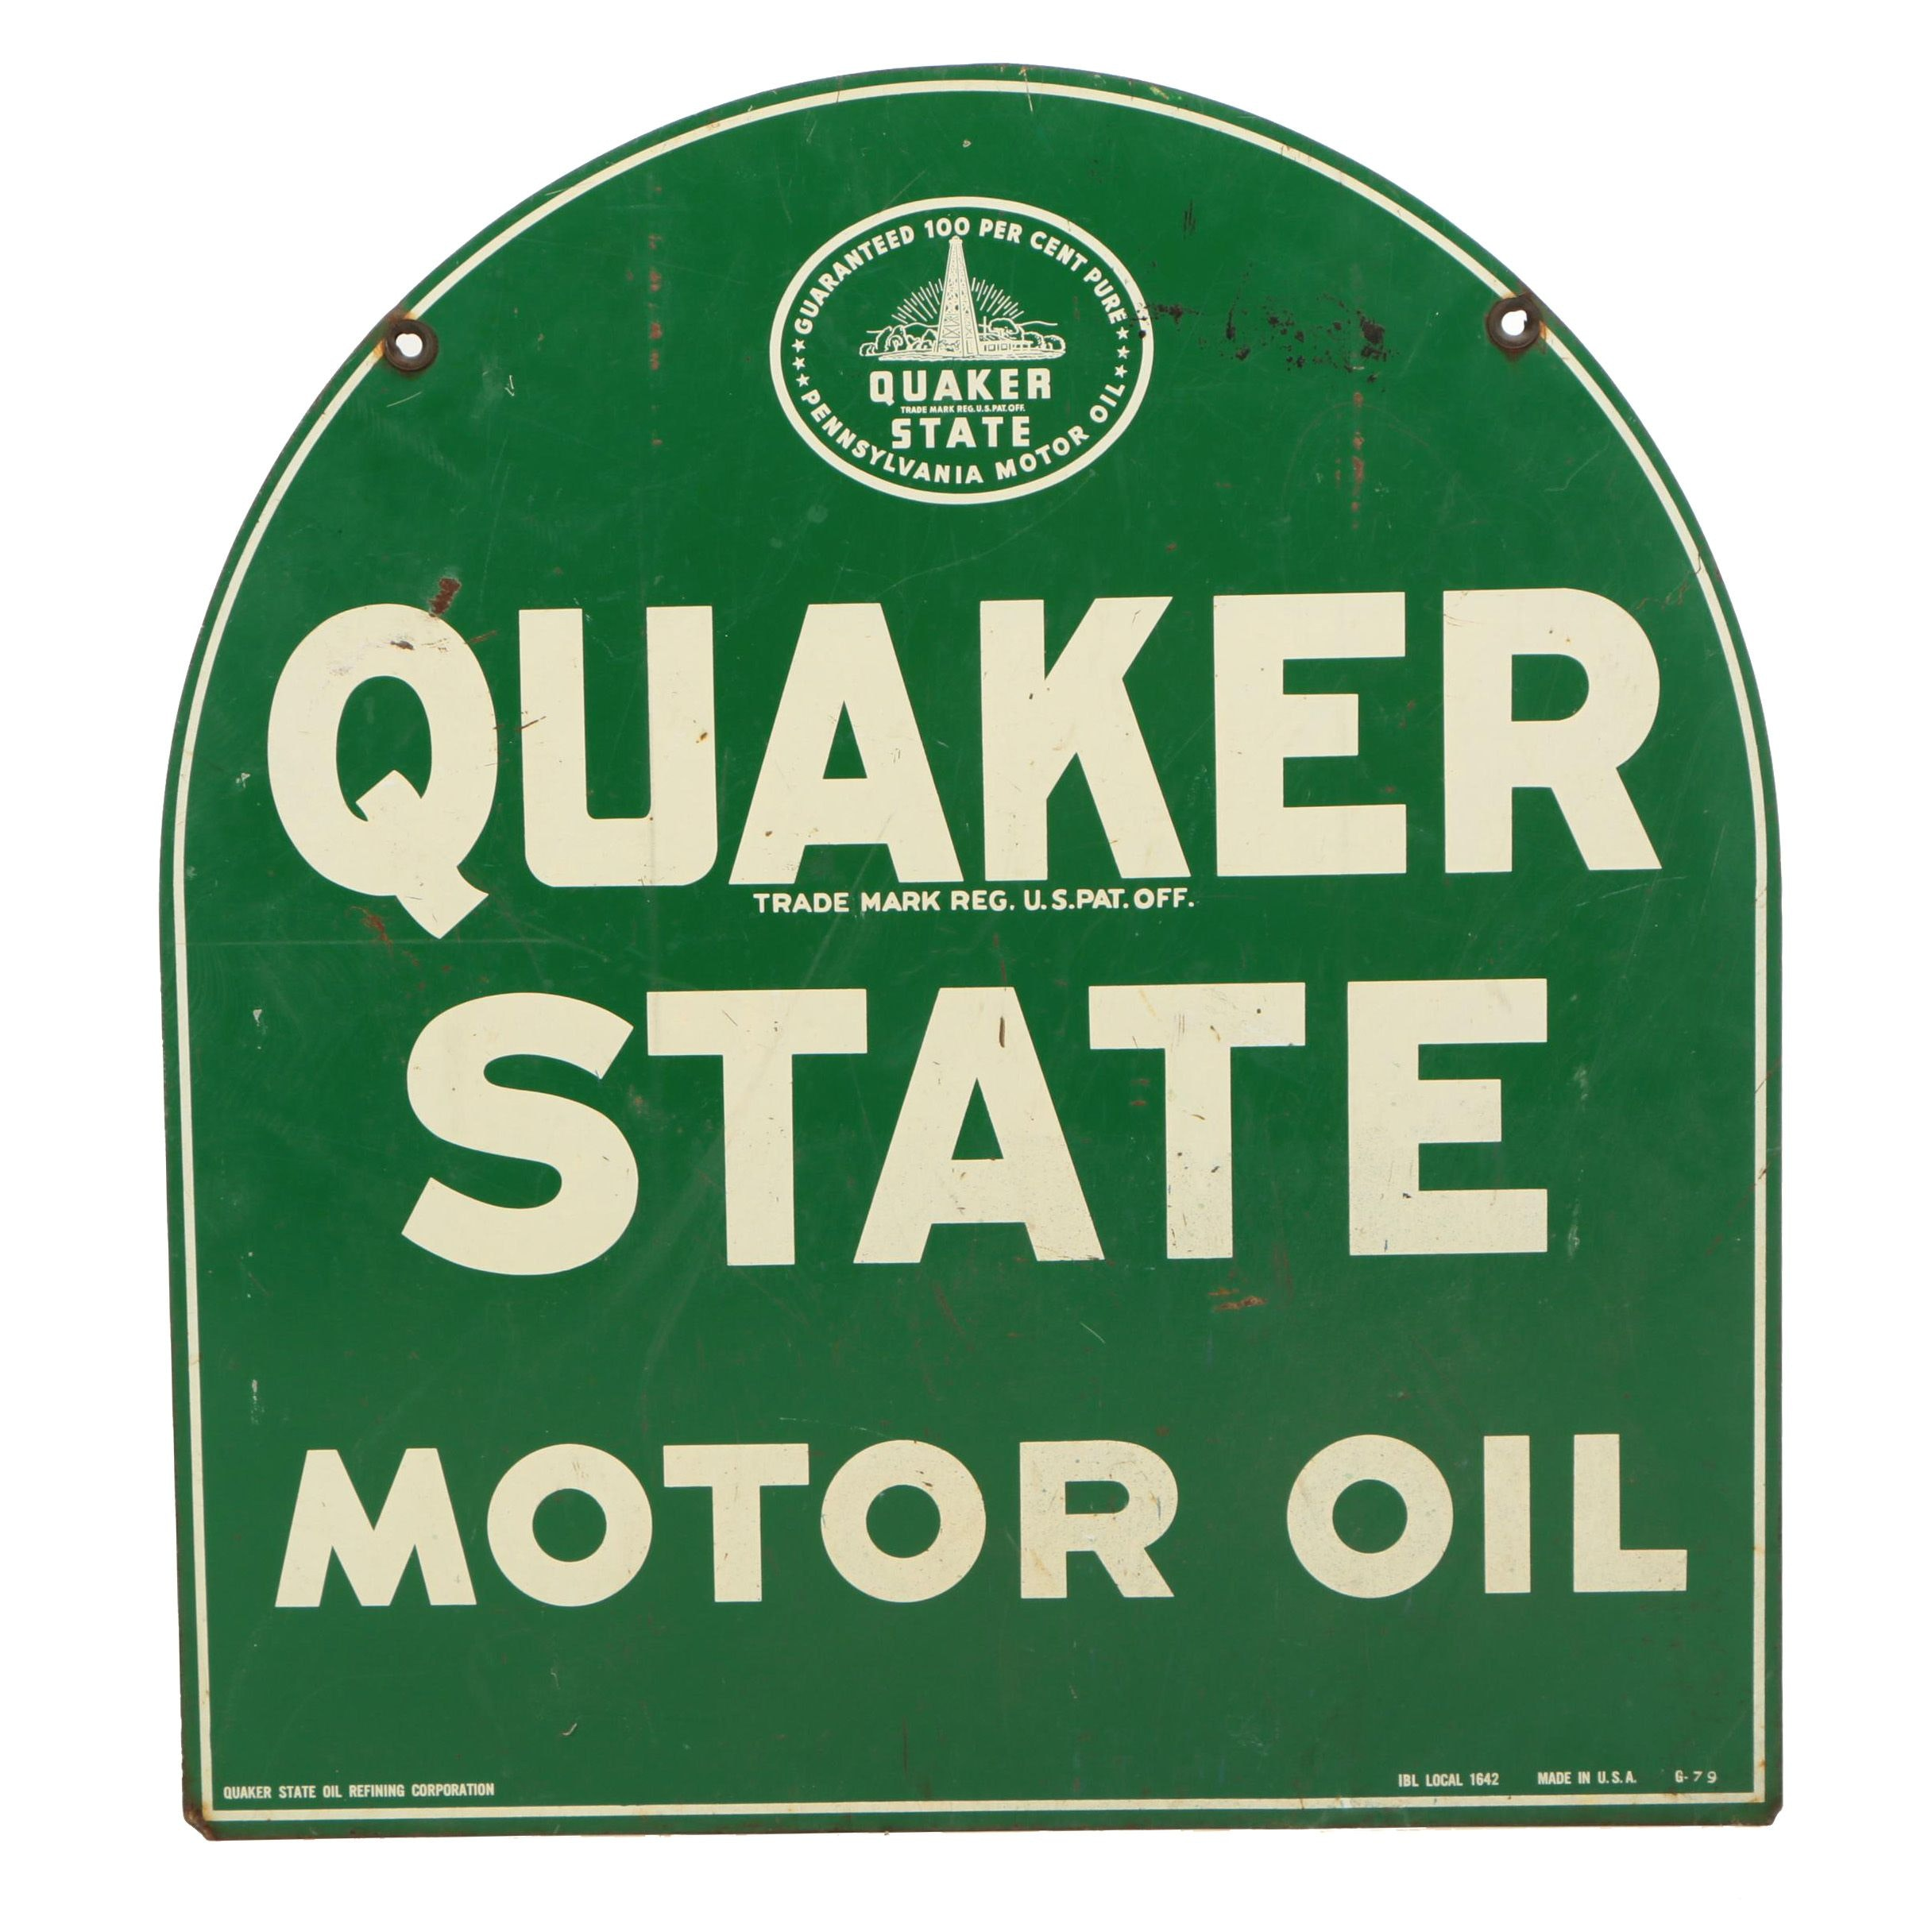 Quaker State Motor Oil Enameled Metal Sign, Mid-20th Century